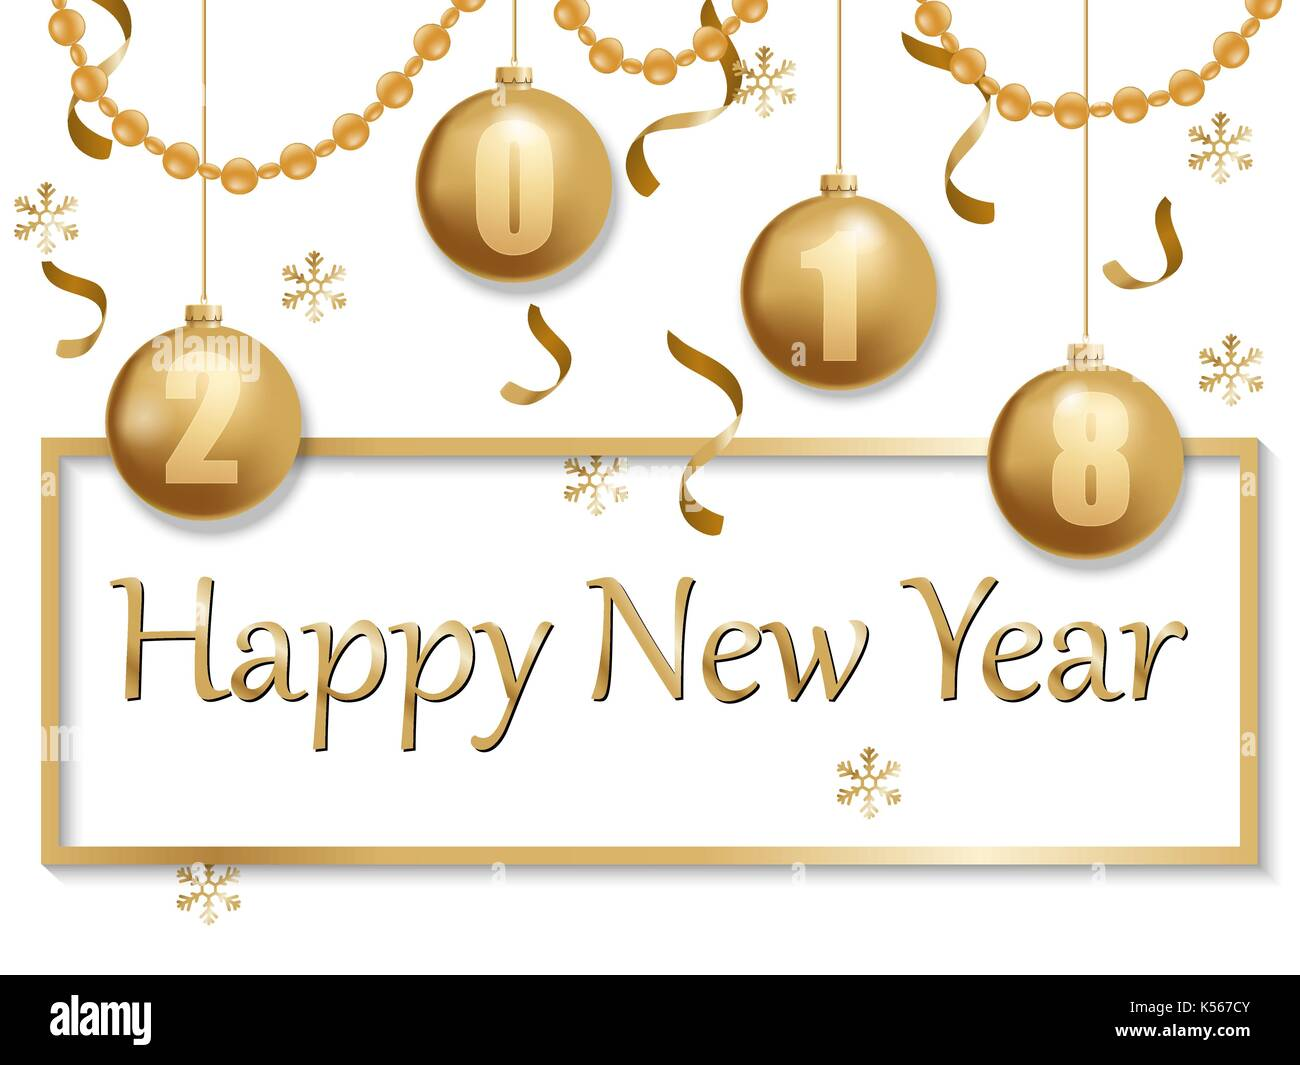 happy new year 2018 gold and black